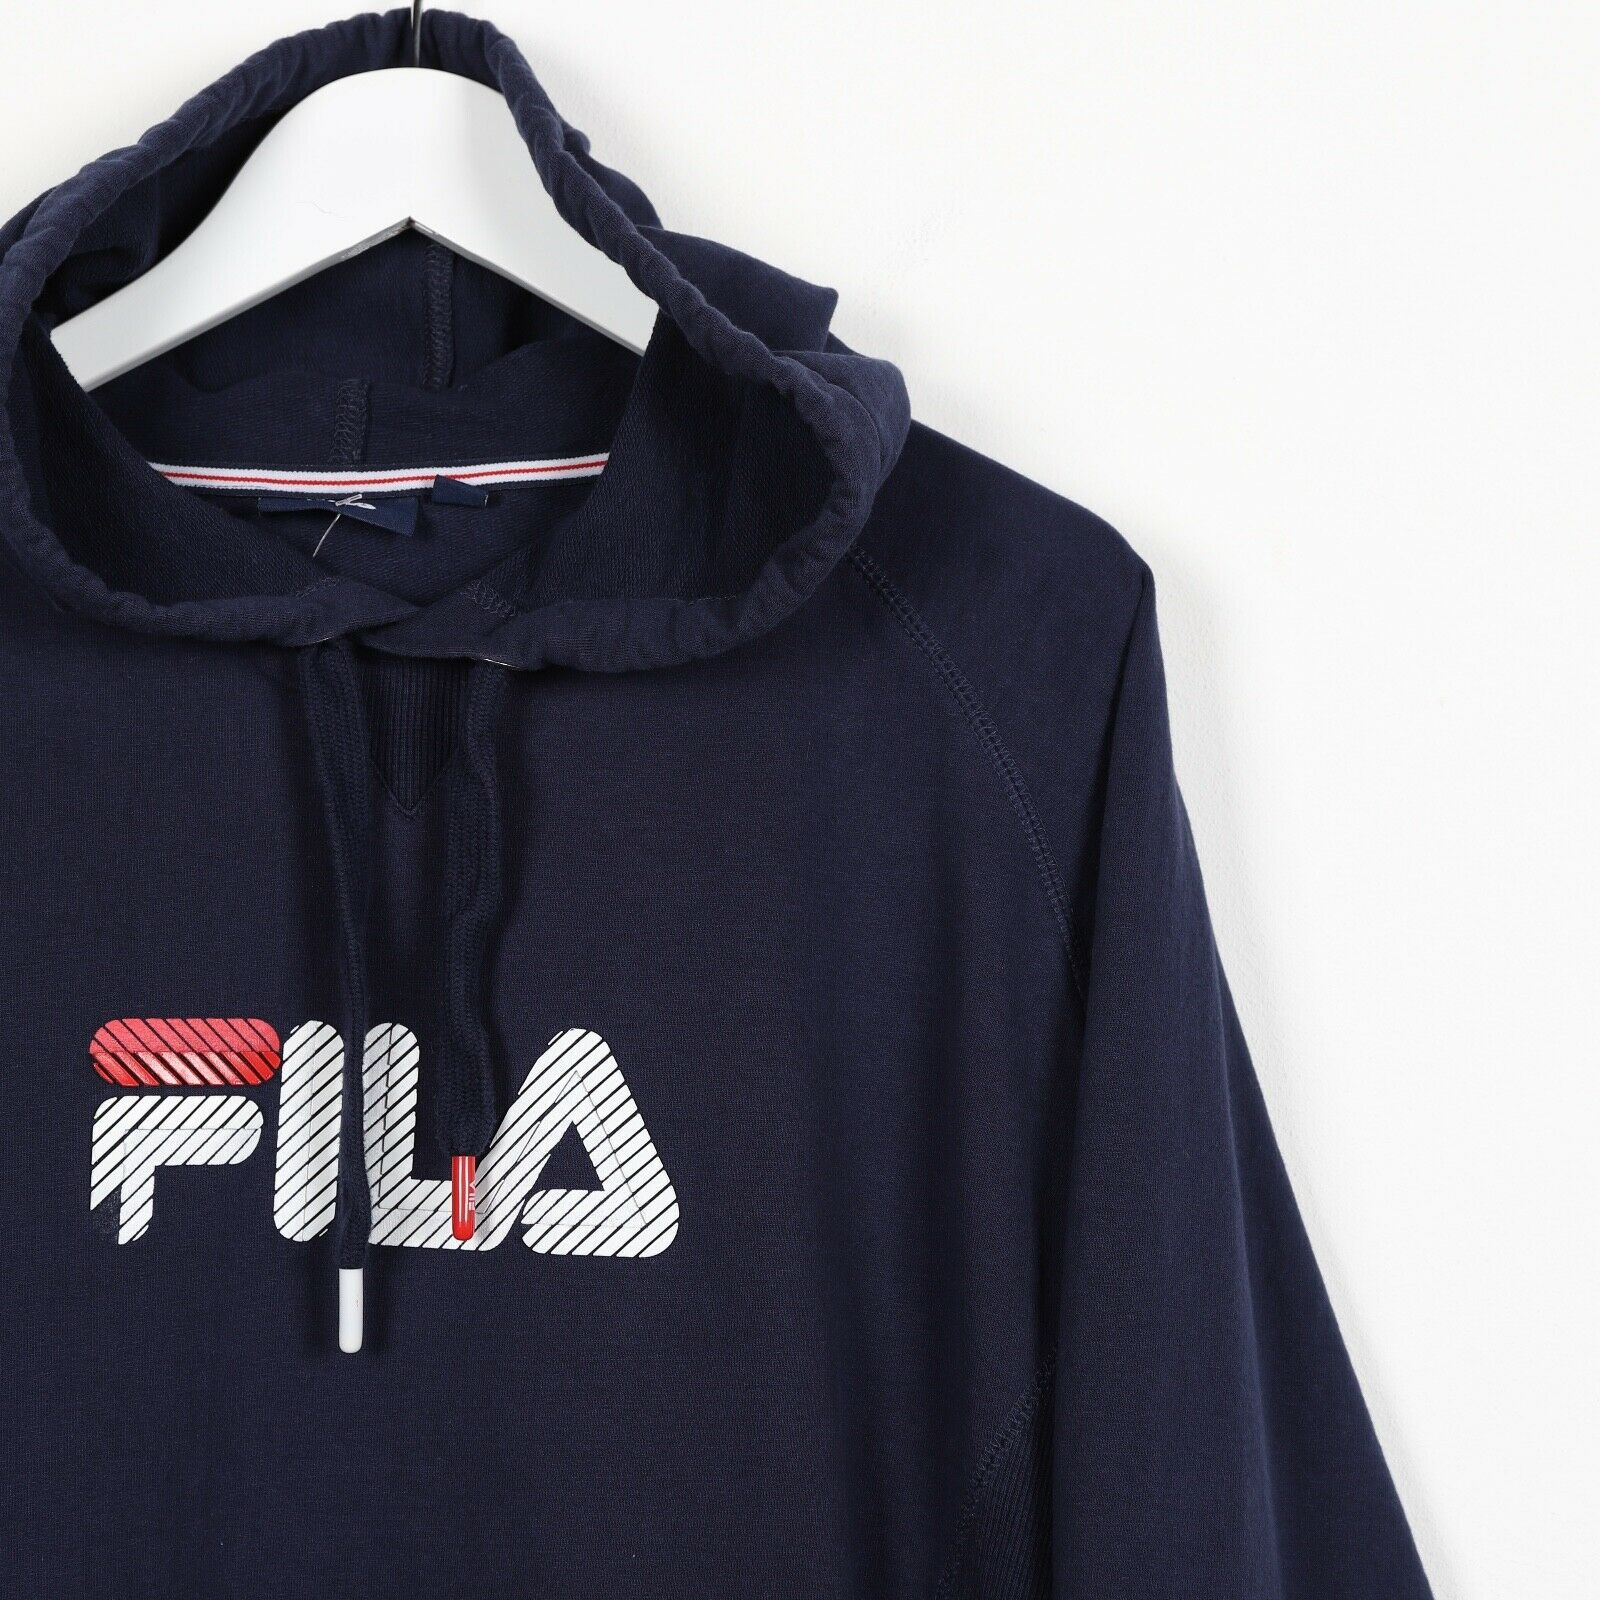 Vintage FILA Spell Out Hoodie Sweatshirt Navy Blue XL